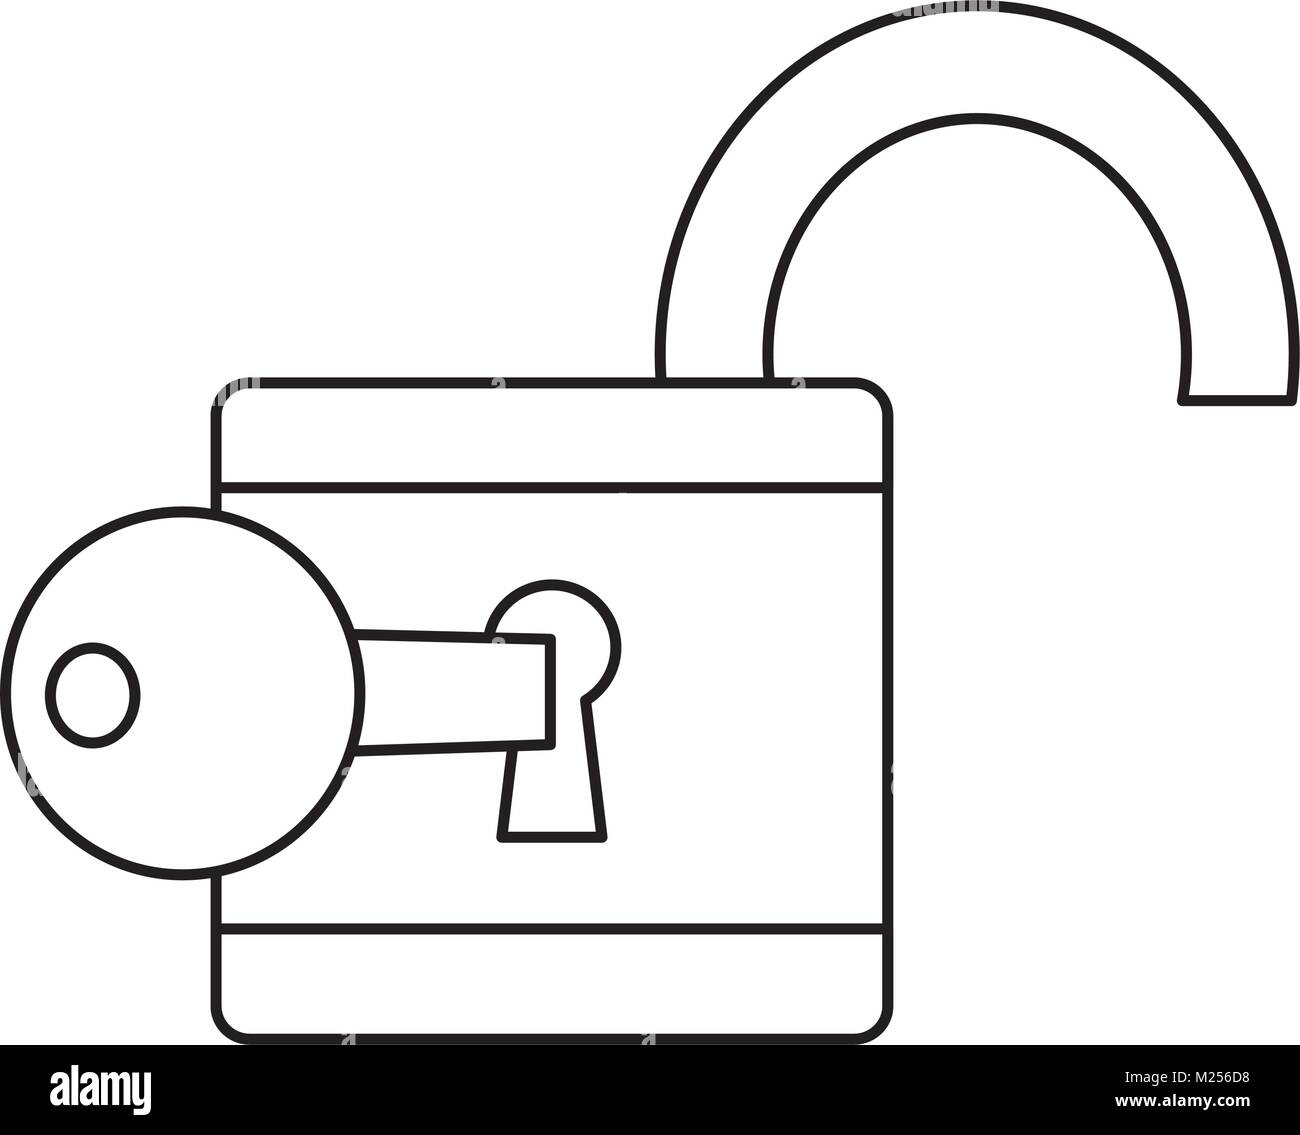 safety lock icon image  Stock Vector